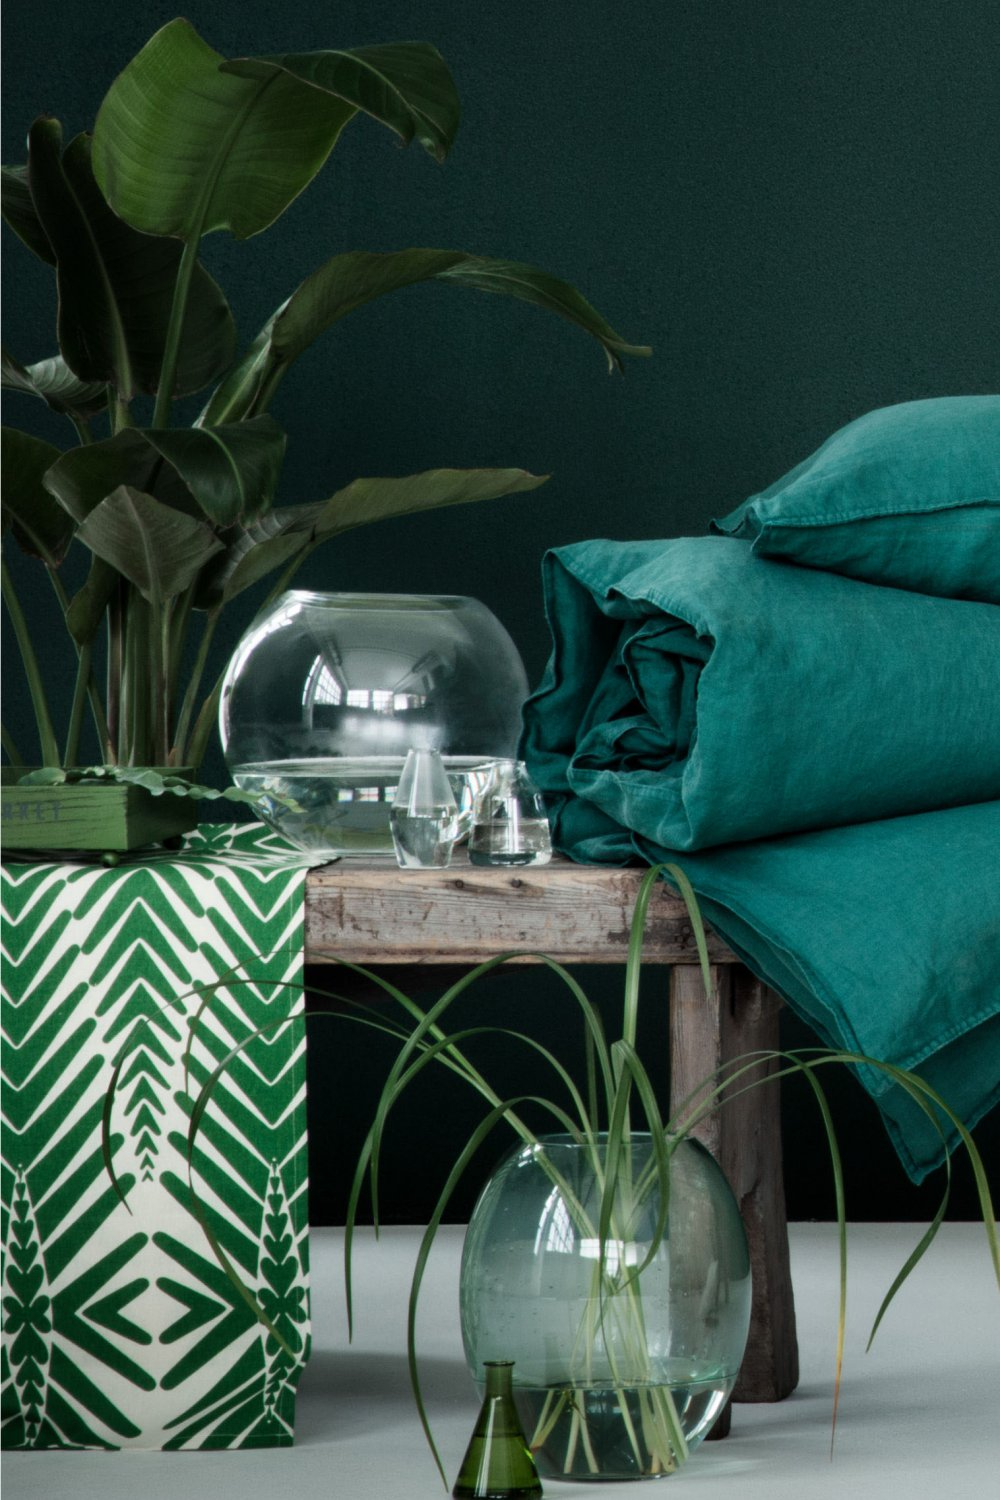 Mur Vegetal En Palette Interieur H&m Home : Un Style Urban Jungle Pour Le Printemps - Marie